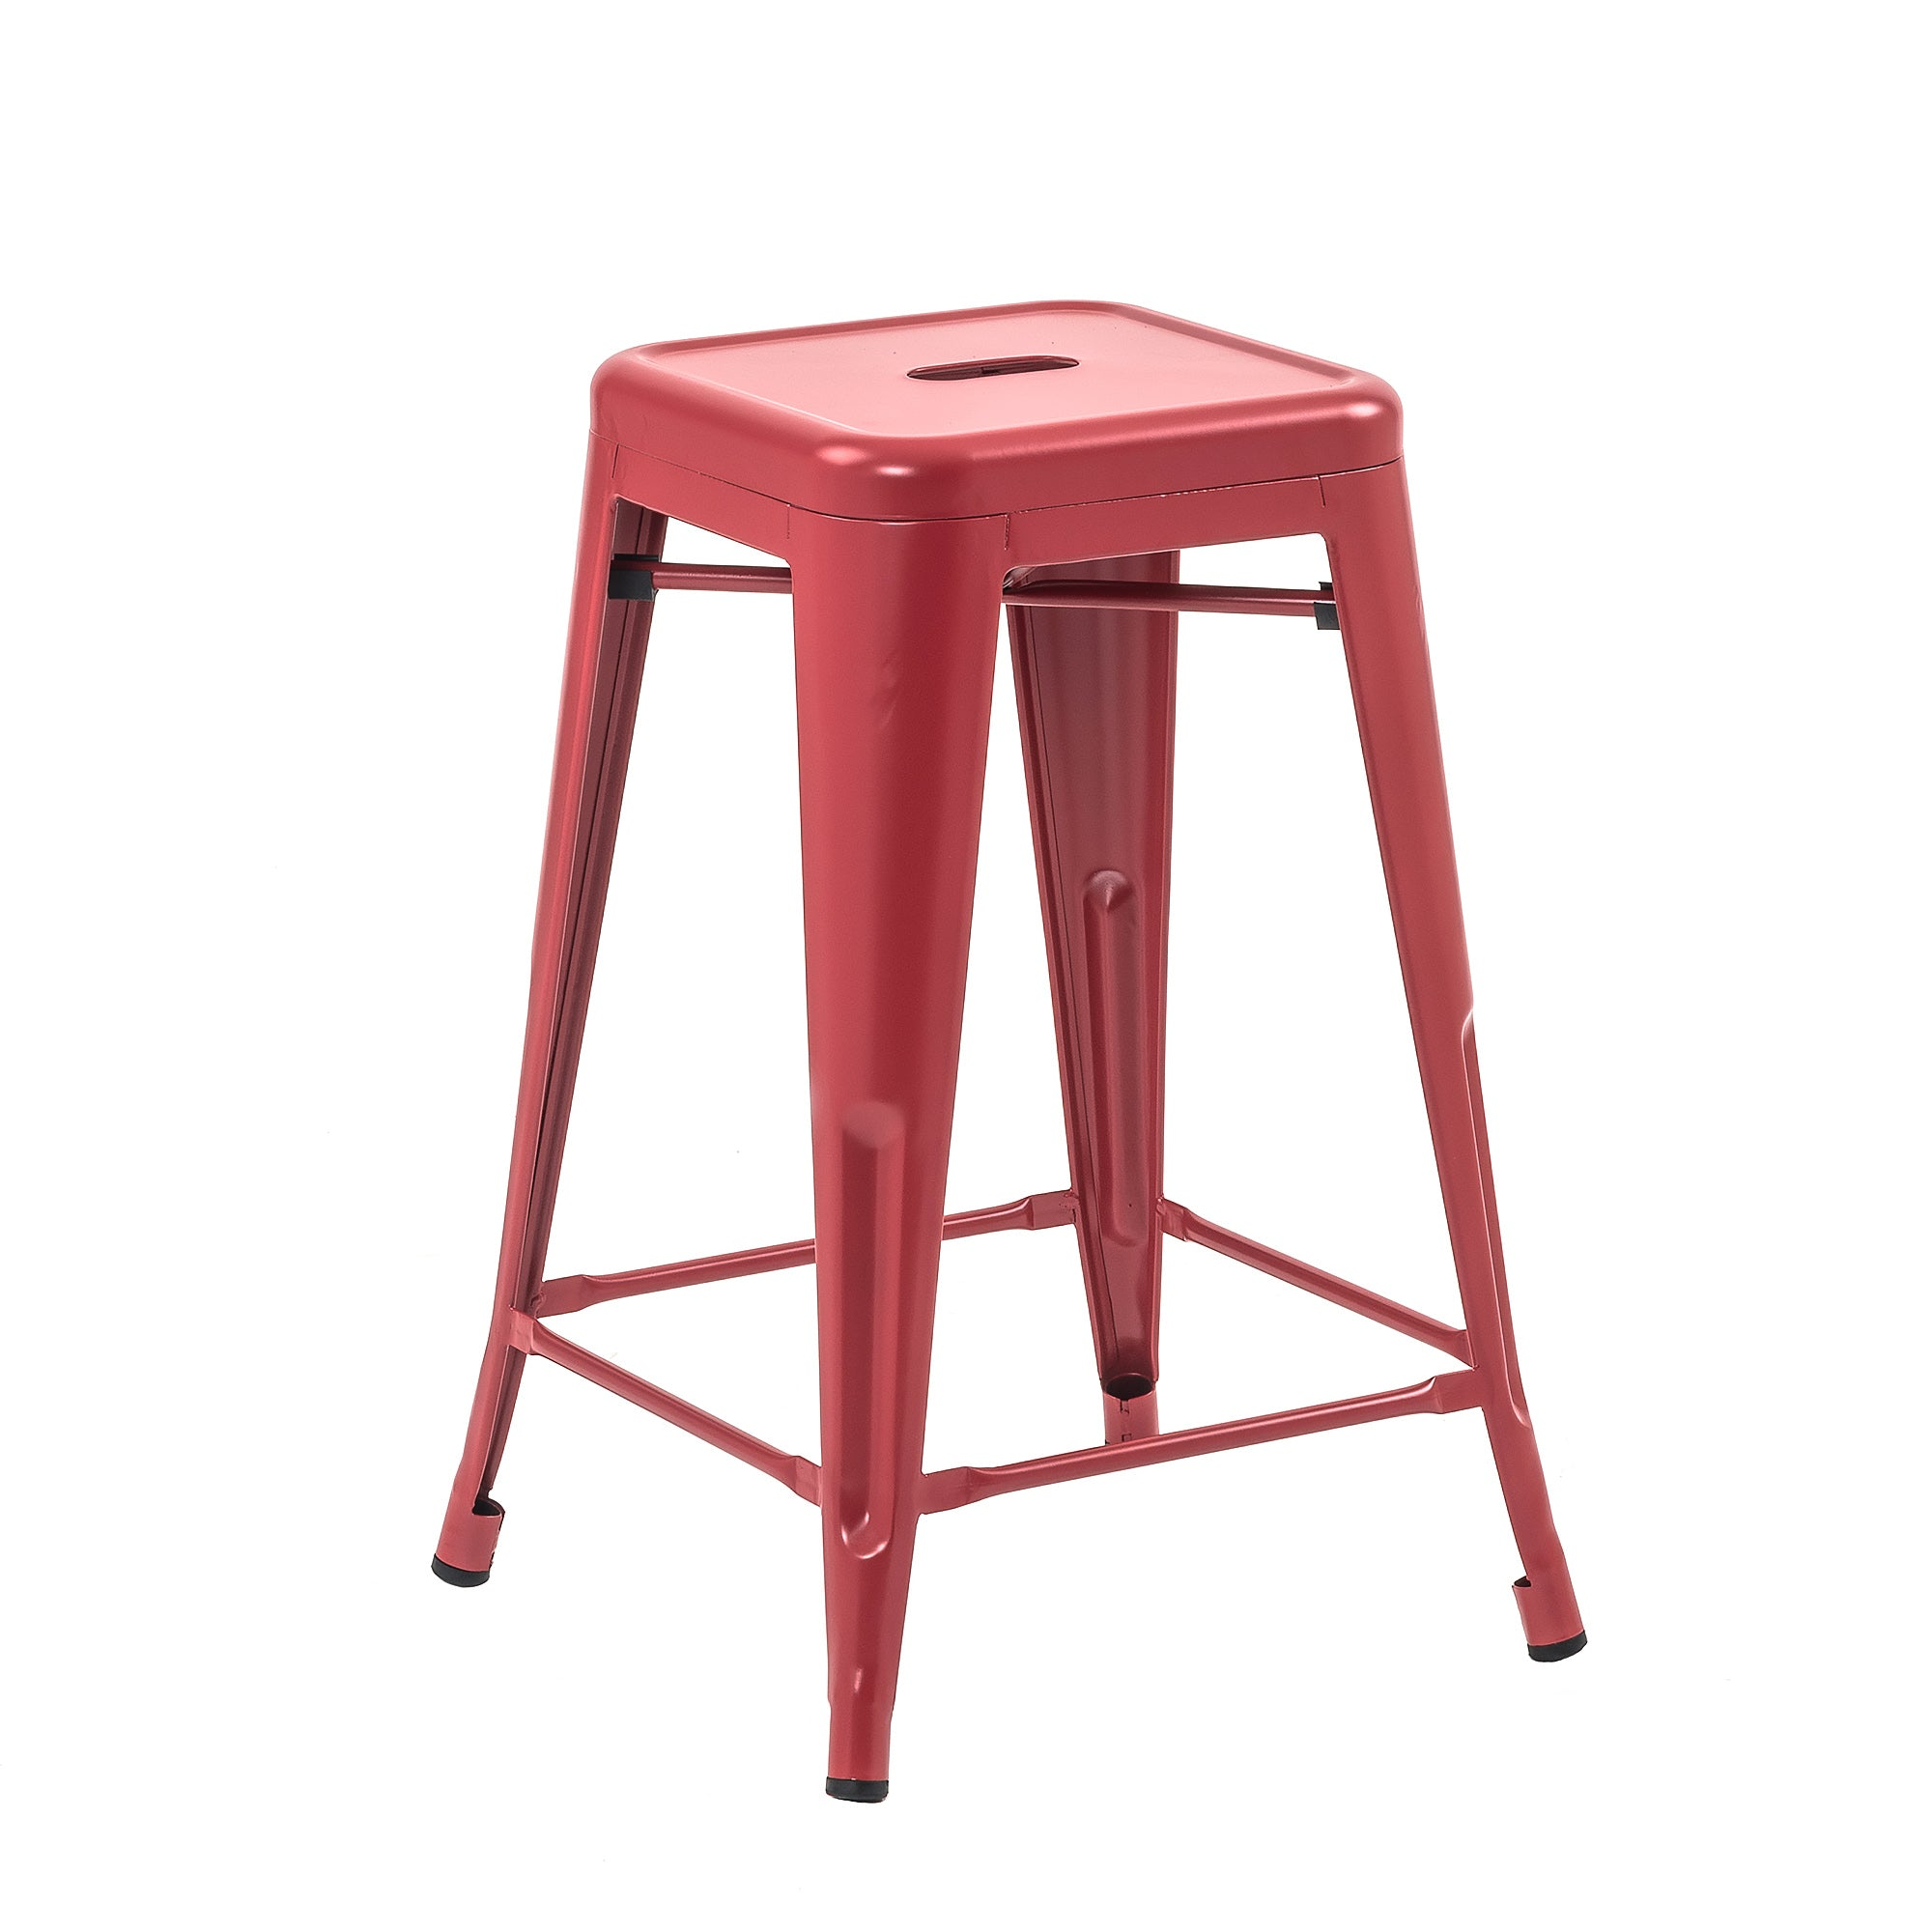 Super Buschman Metal Bar Stools 24 Counter Height Indoor Outdoor And Stackable Set Of 4 Matte Red Ncnpc Chair Design For Home Ncnpcorg